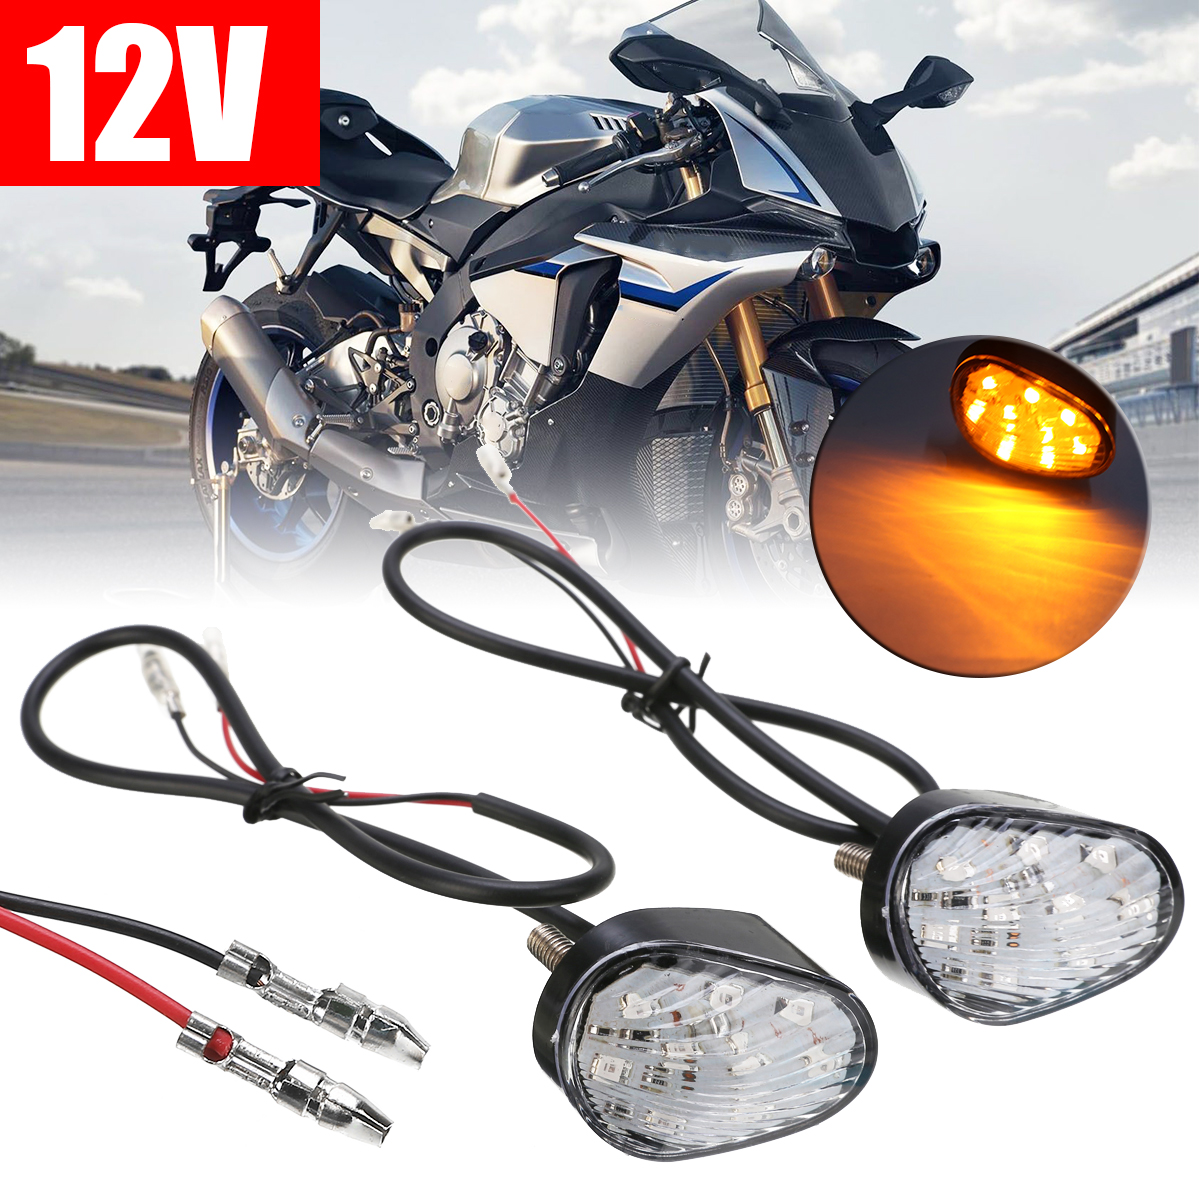 Mayitr 1pair 12V Motorcycle Amber <font><b>LED</b></font> Turn Signal Indicator Lamp Flashing Blinkers <font><b>Light</b></font> For <font><b>Yamaha</b></font> YZF <font><b>R1</b></font> 02-12 YZF R6 03-12 image